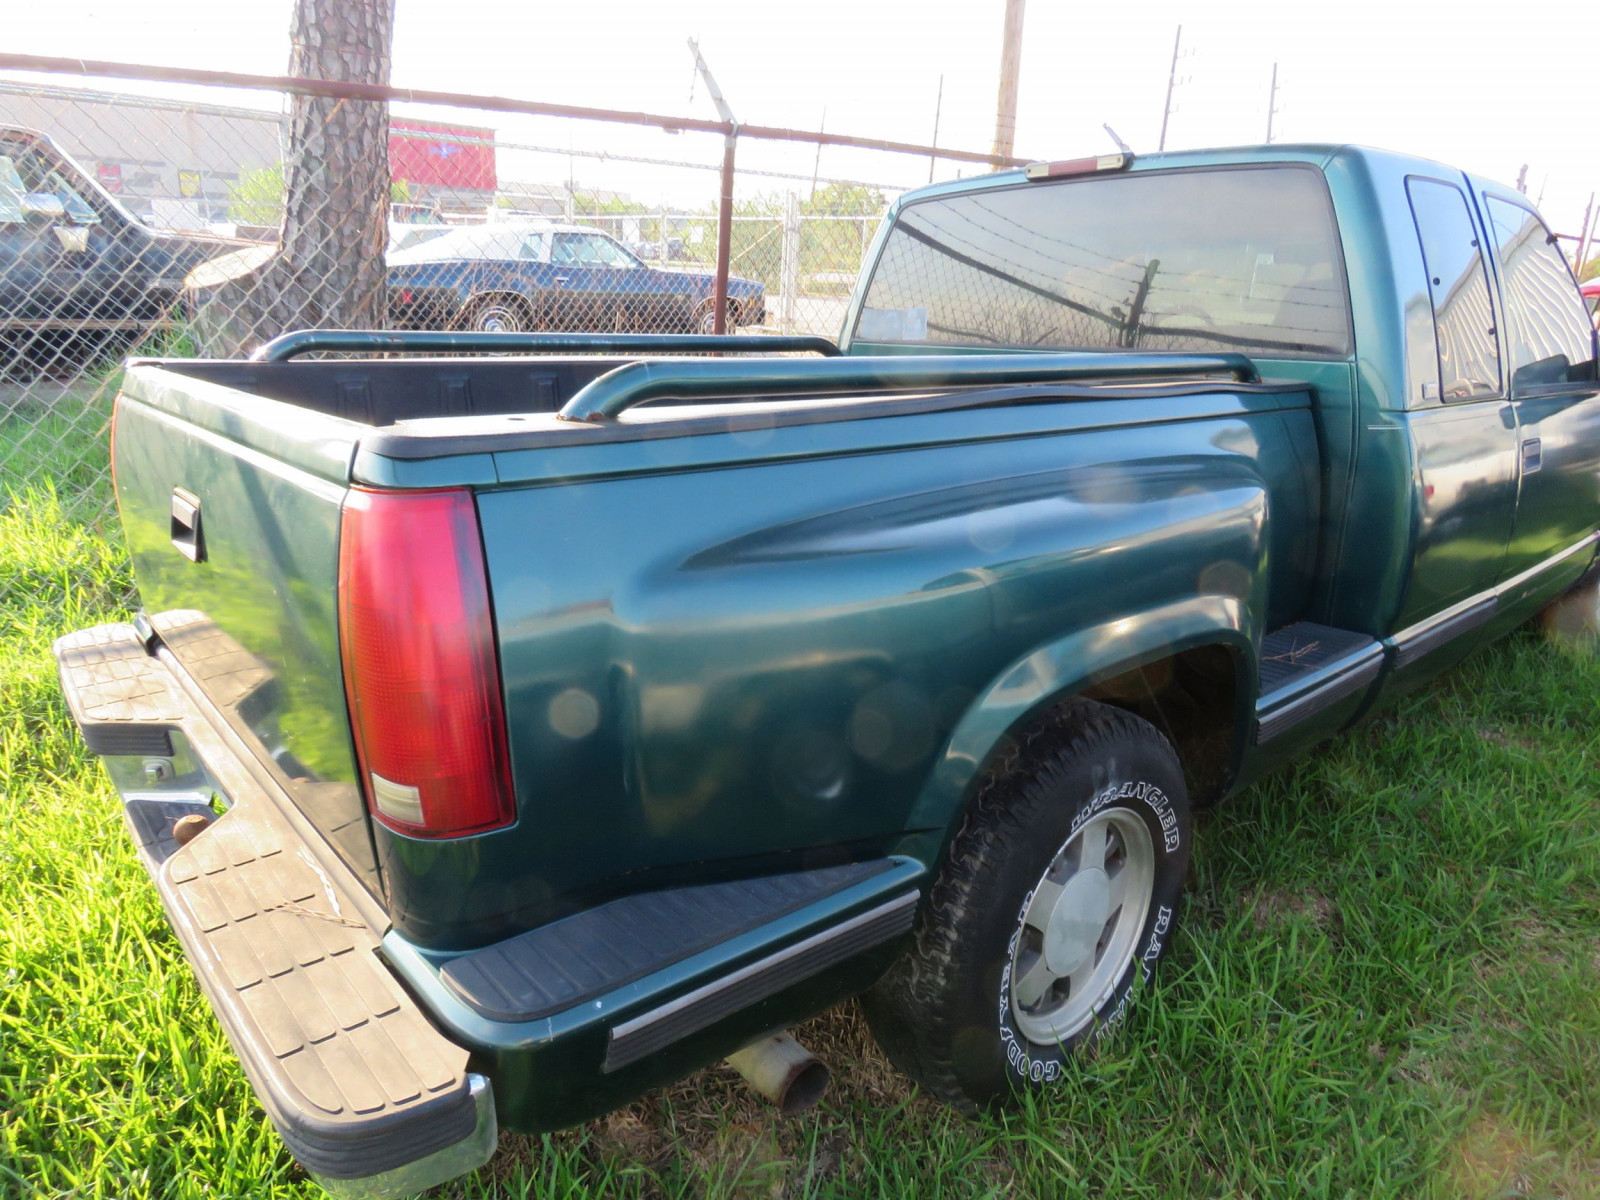 1995 Chevrolet Stepside Pickup - Image 3